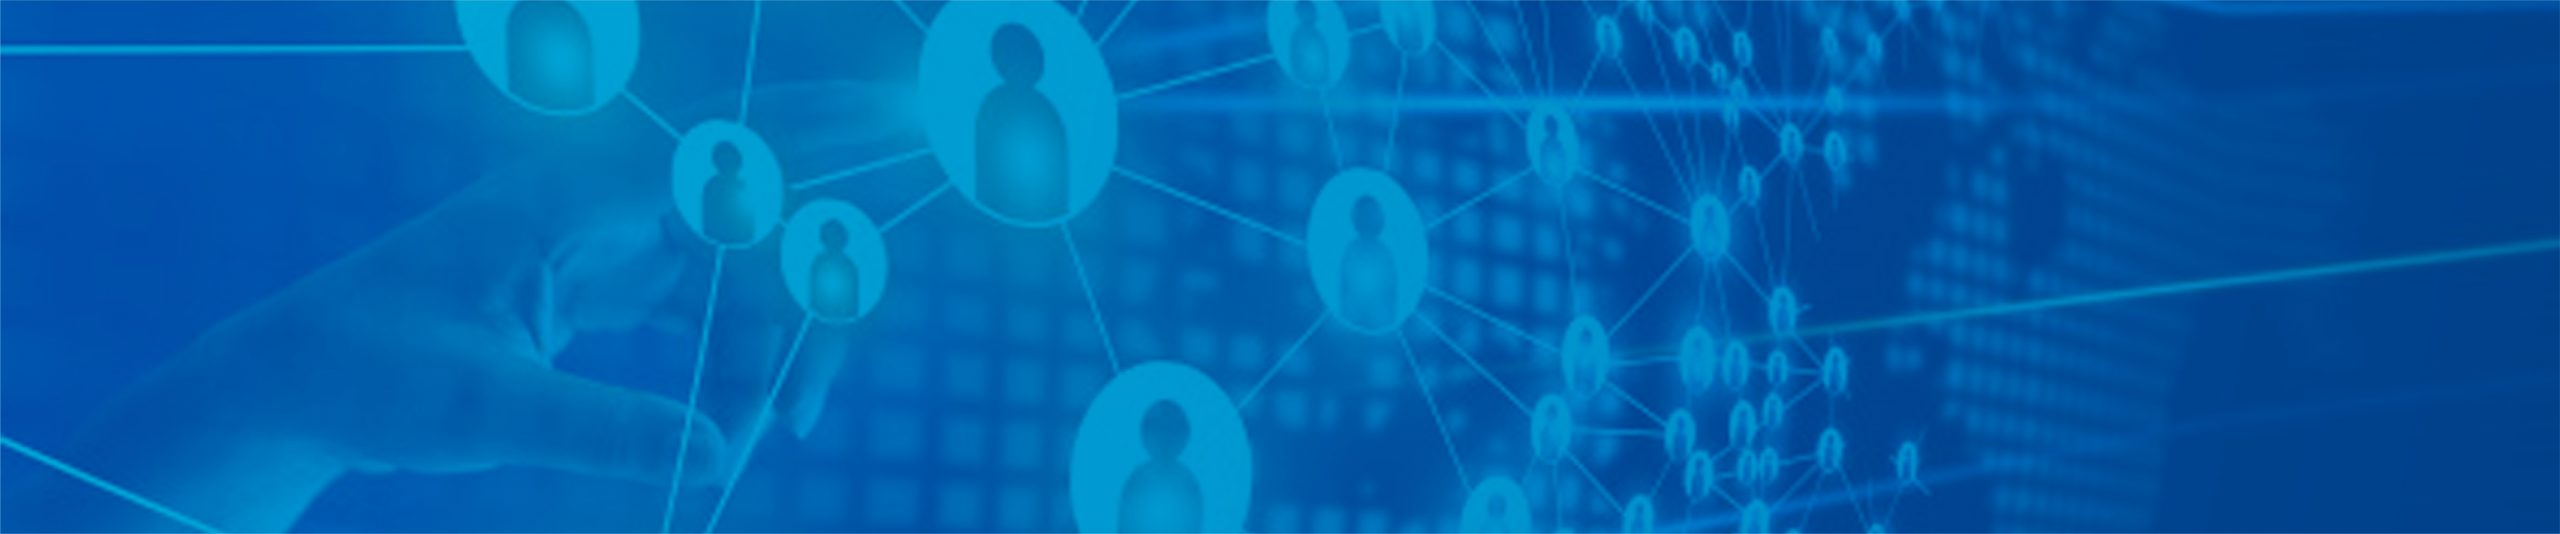 core network solutions header image